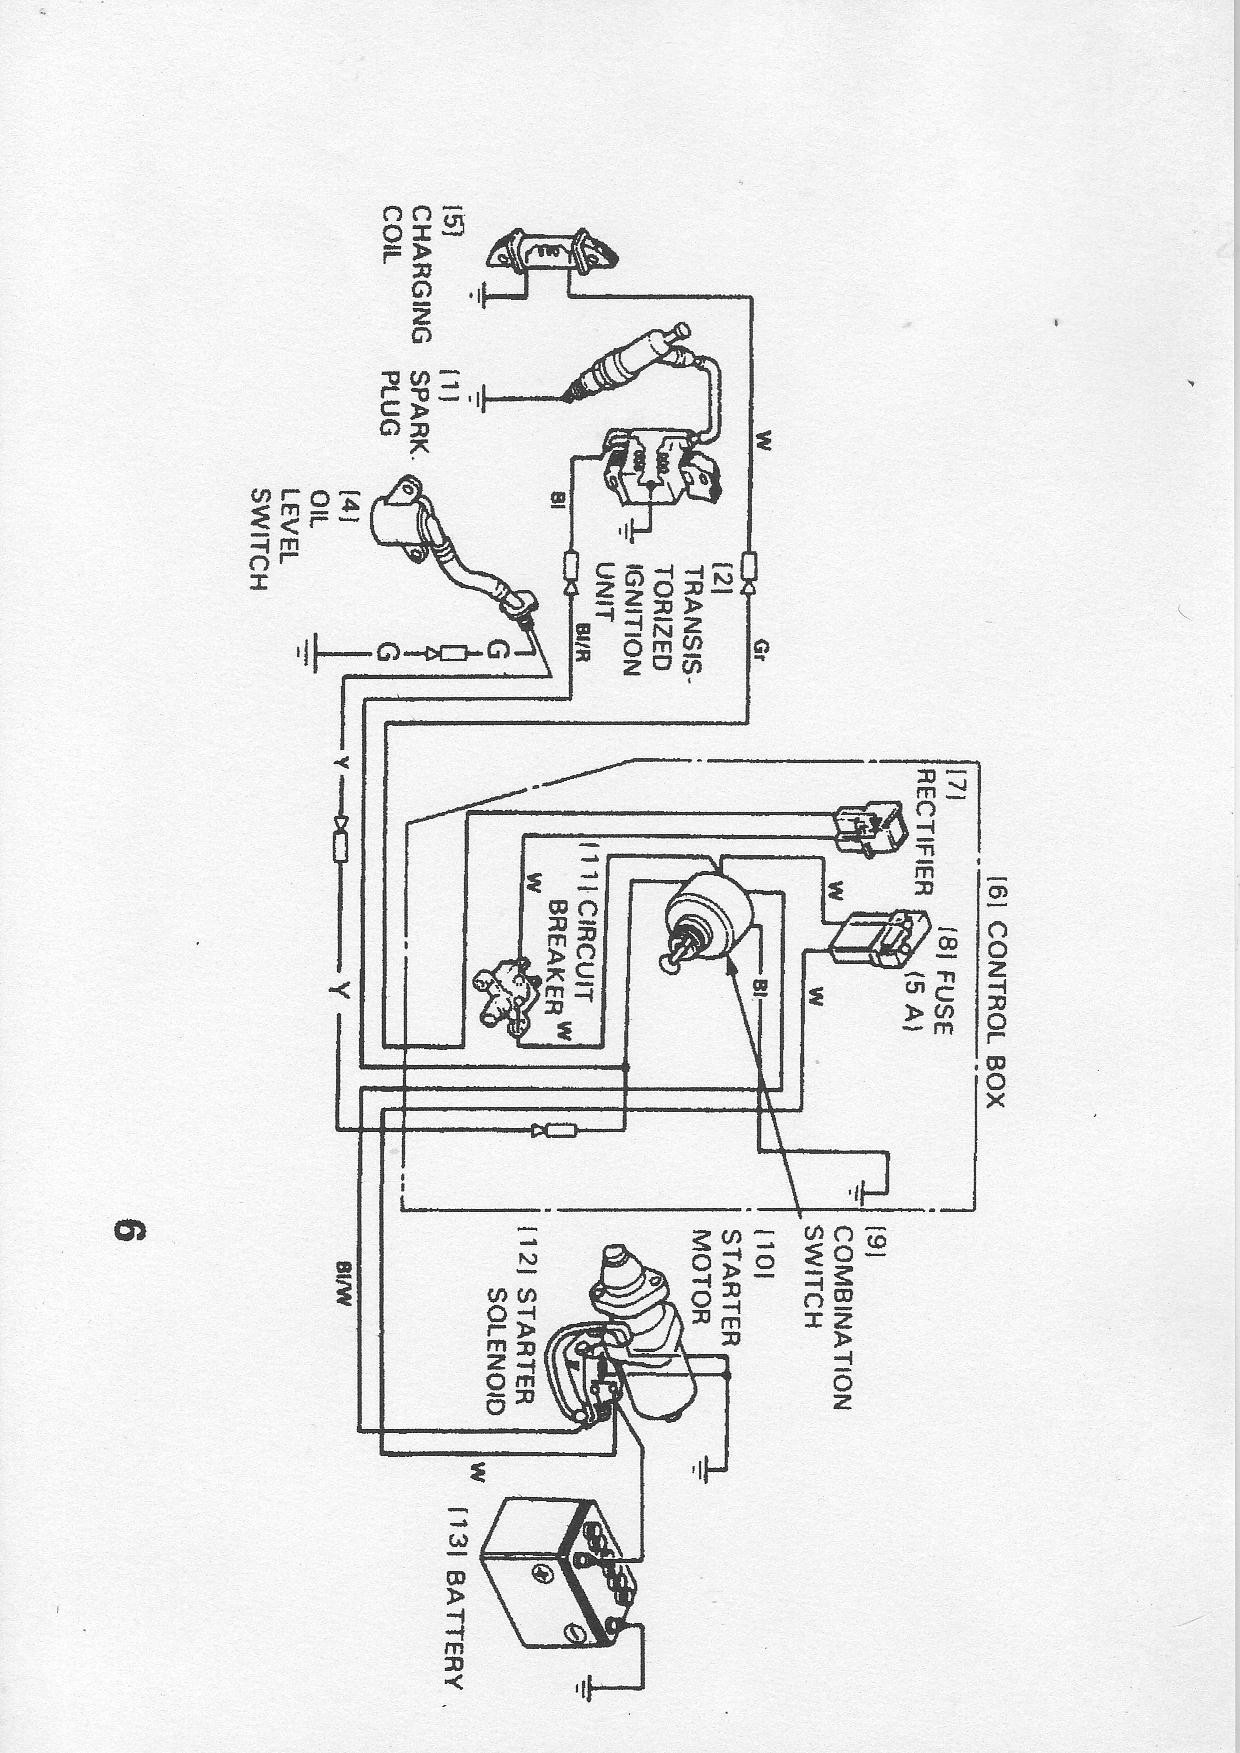 Honda Gx390 Parts Diagram Unique Predator 420cc Wiring Diagram ...